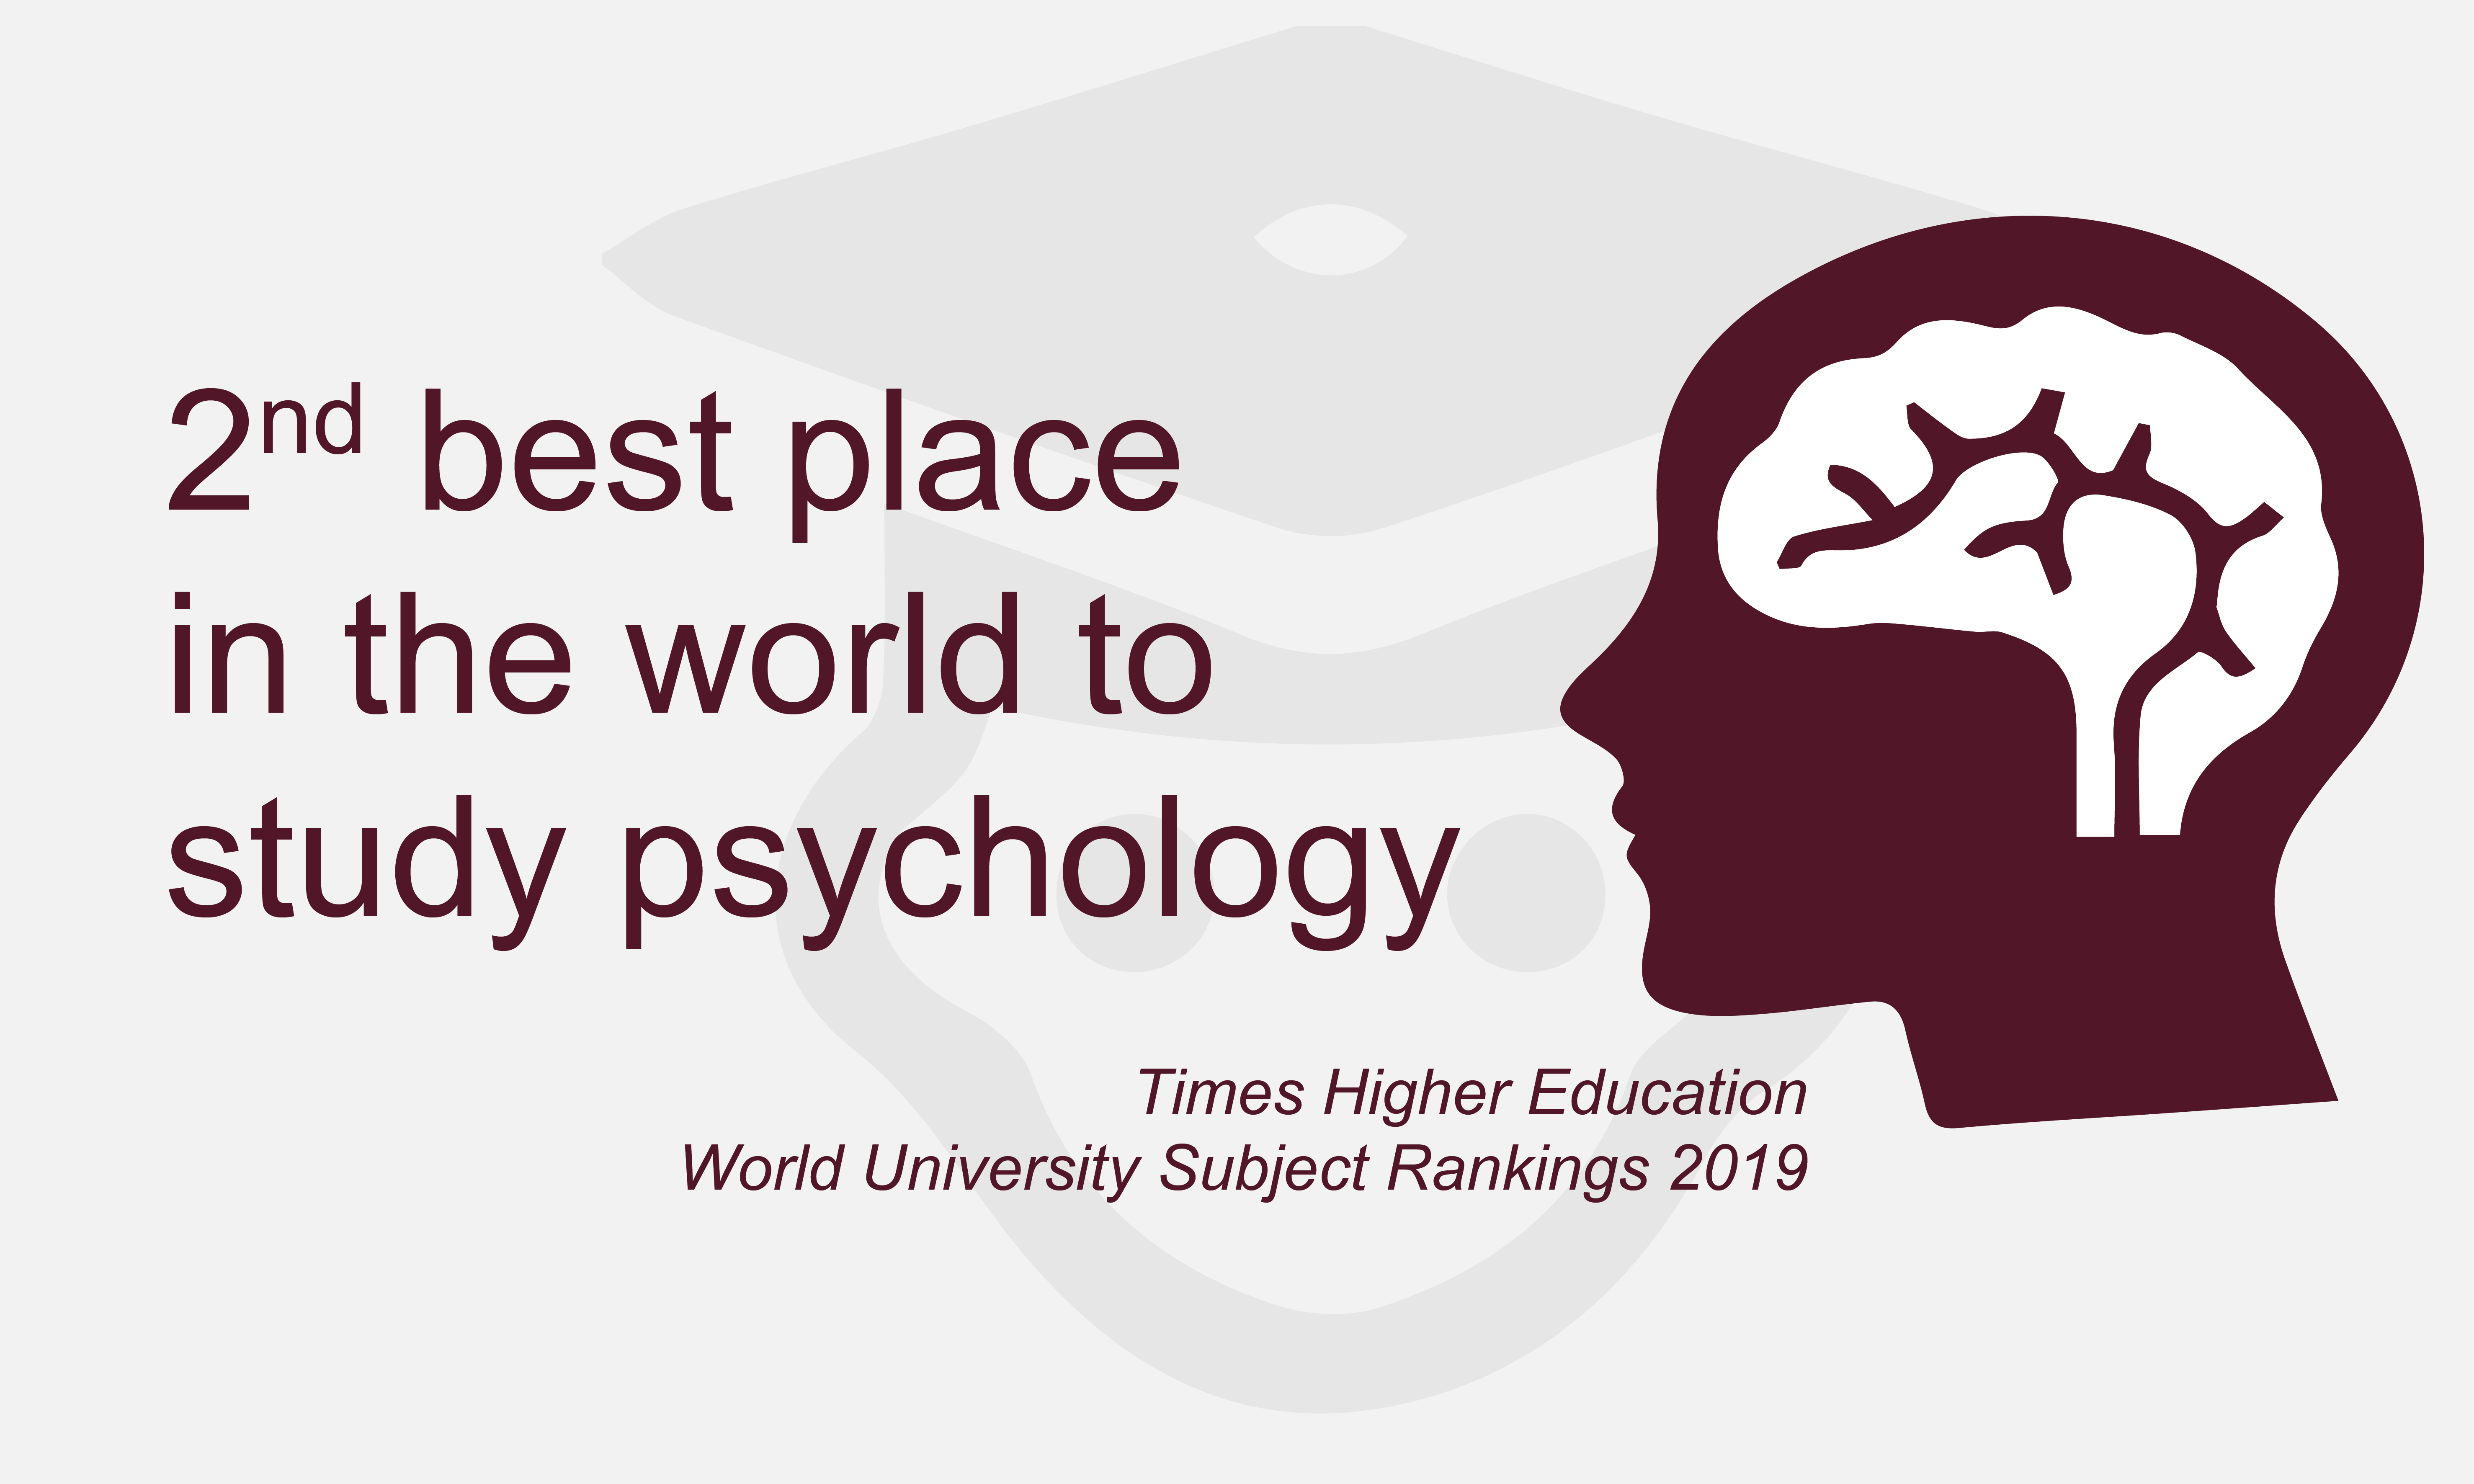 2nd best place in the world to study psychology